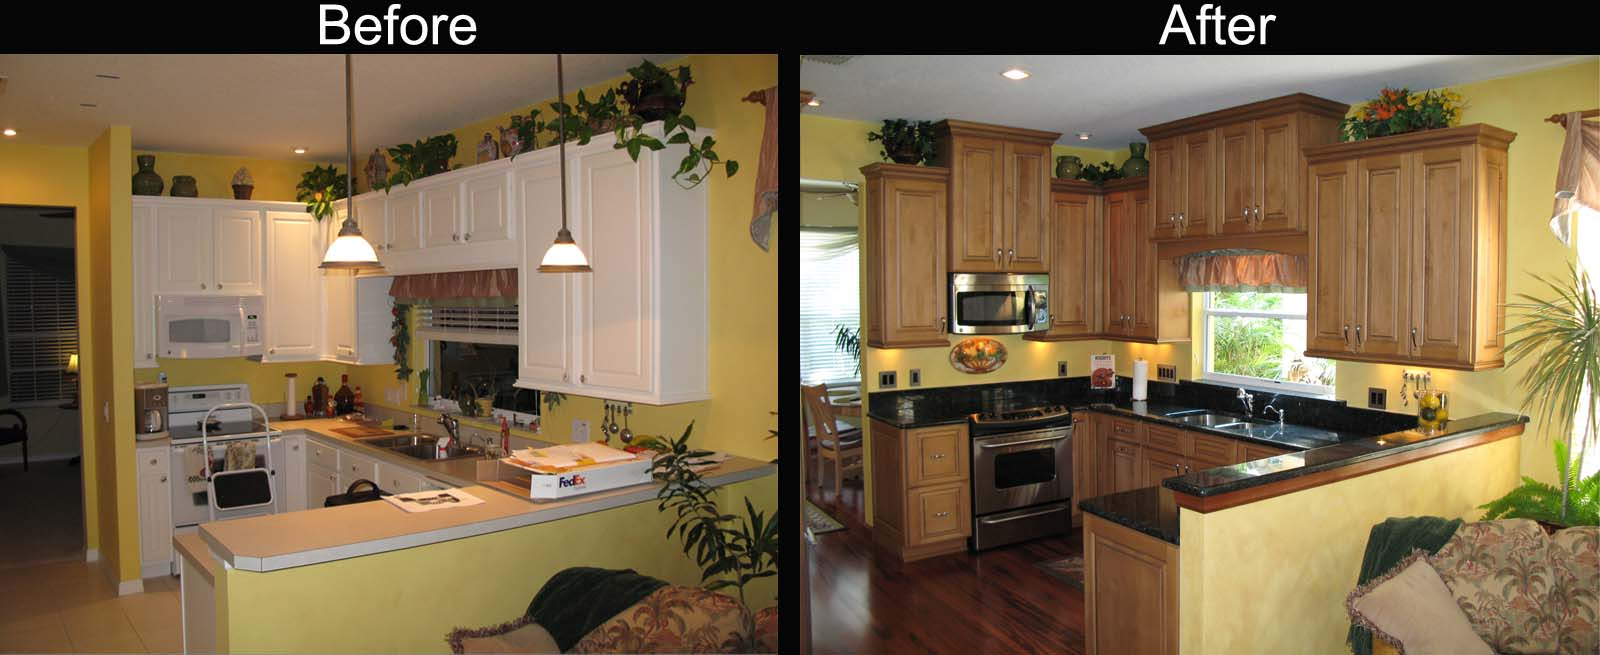 Kitchen decor kitchen remodel before and after Mobile home kitchen remodel pictures